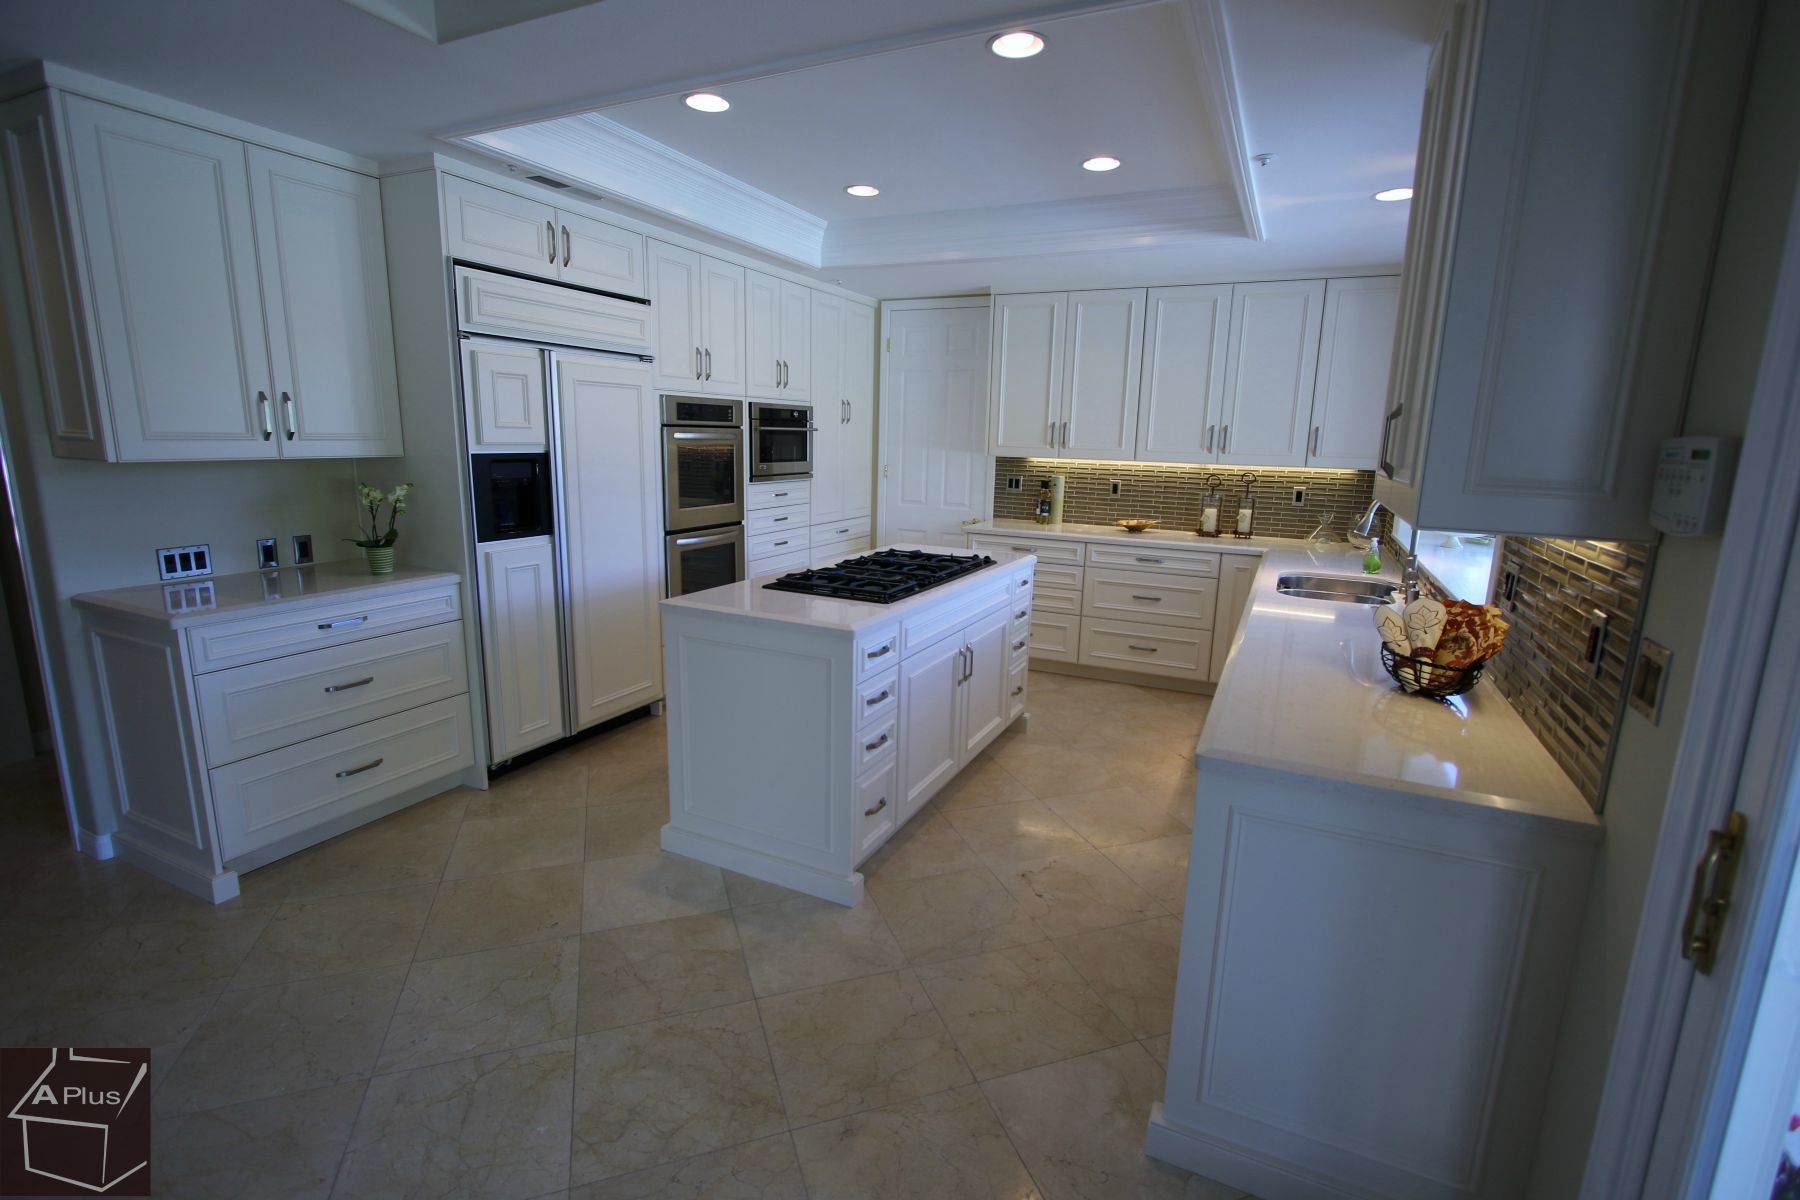 Design Build White Cabinets #kitchenremodel In Coto De Caza Orange County  Http://